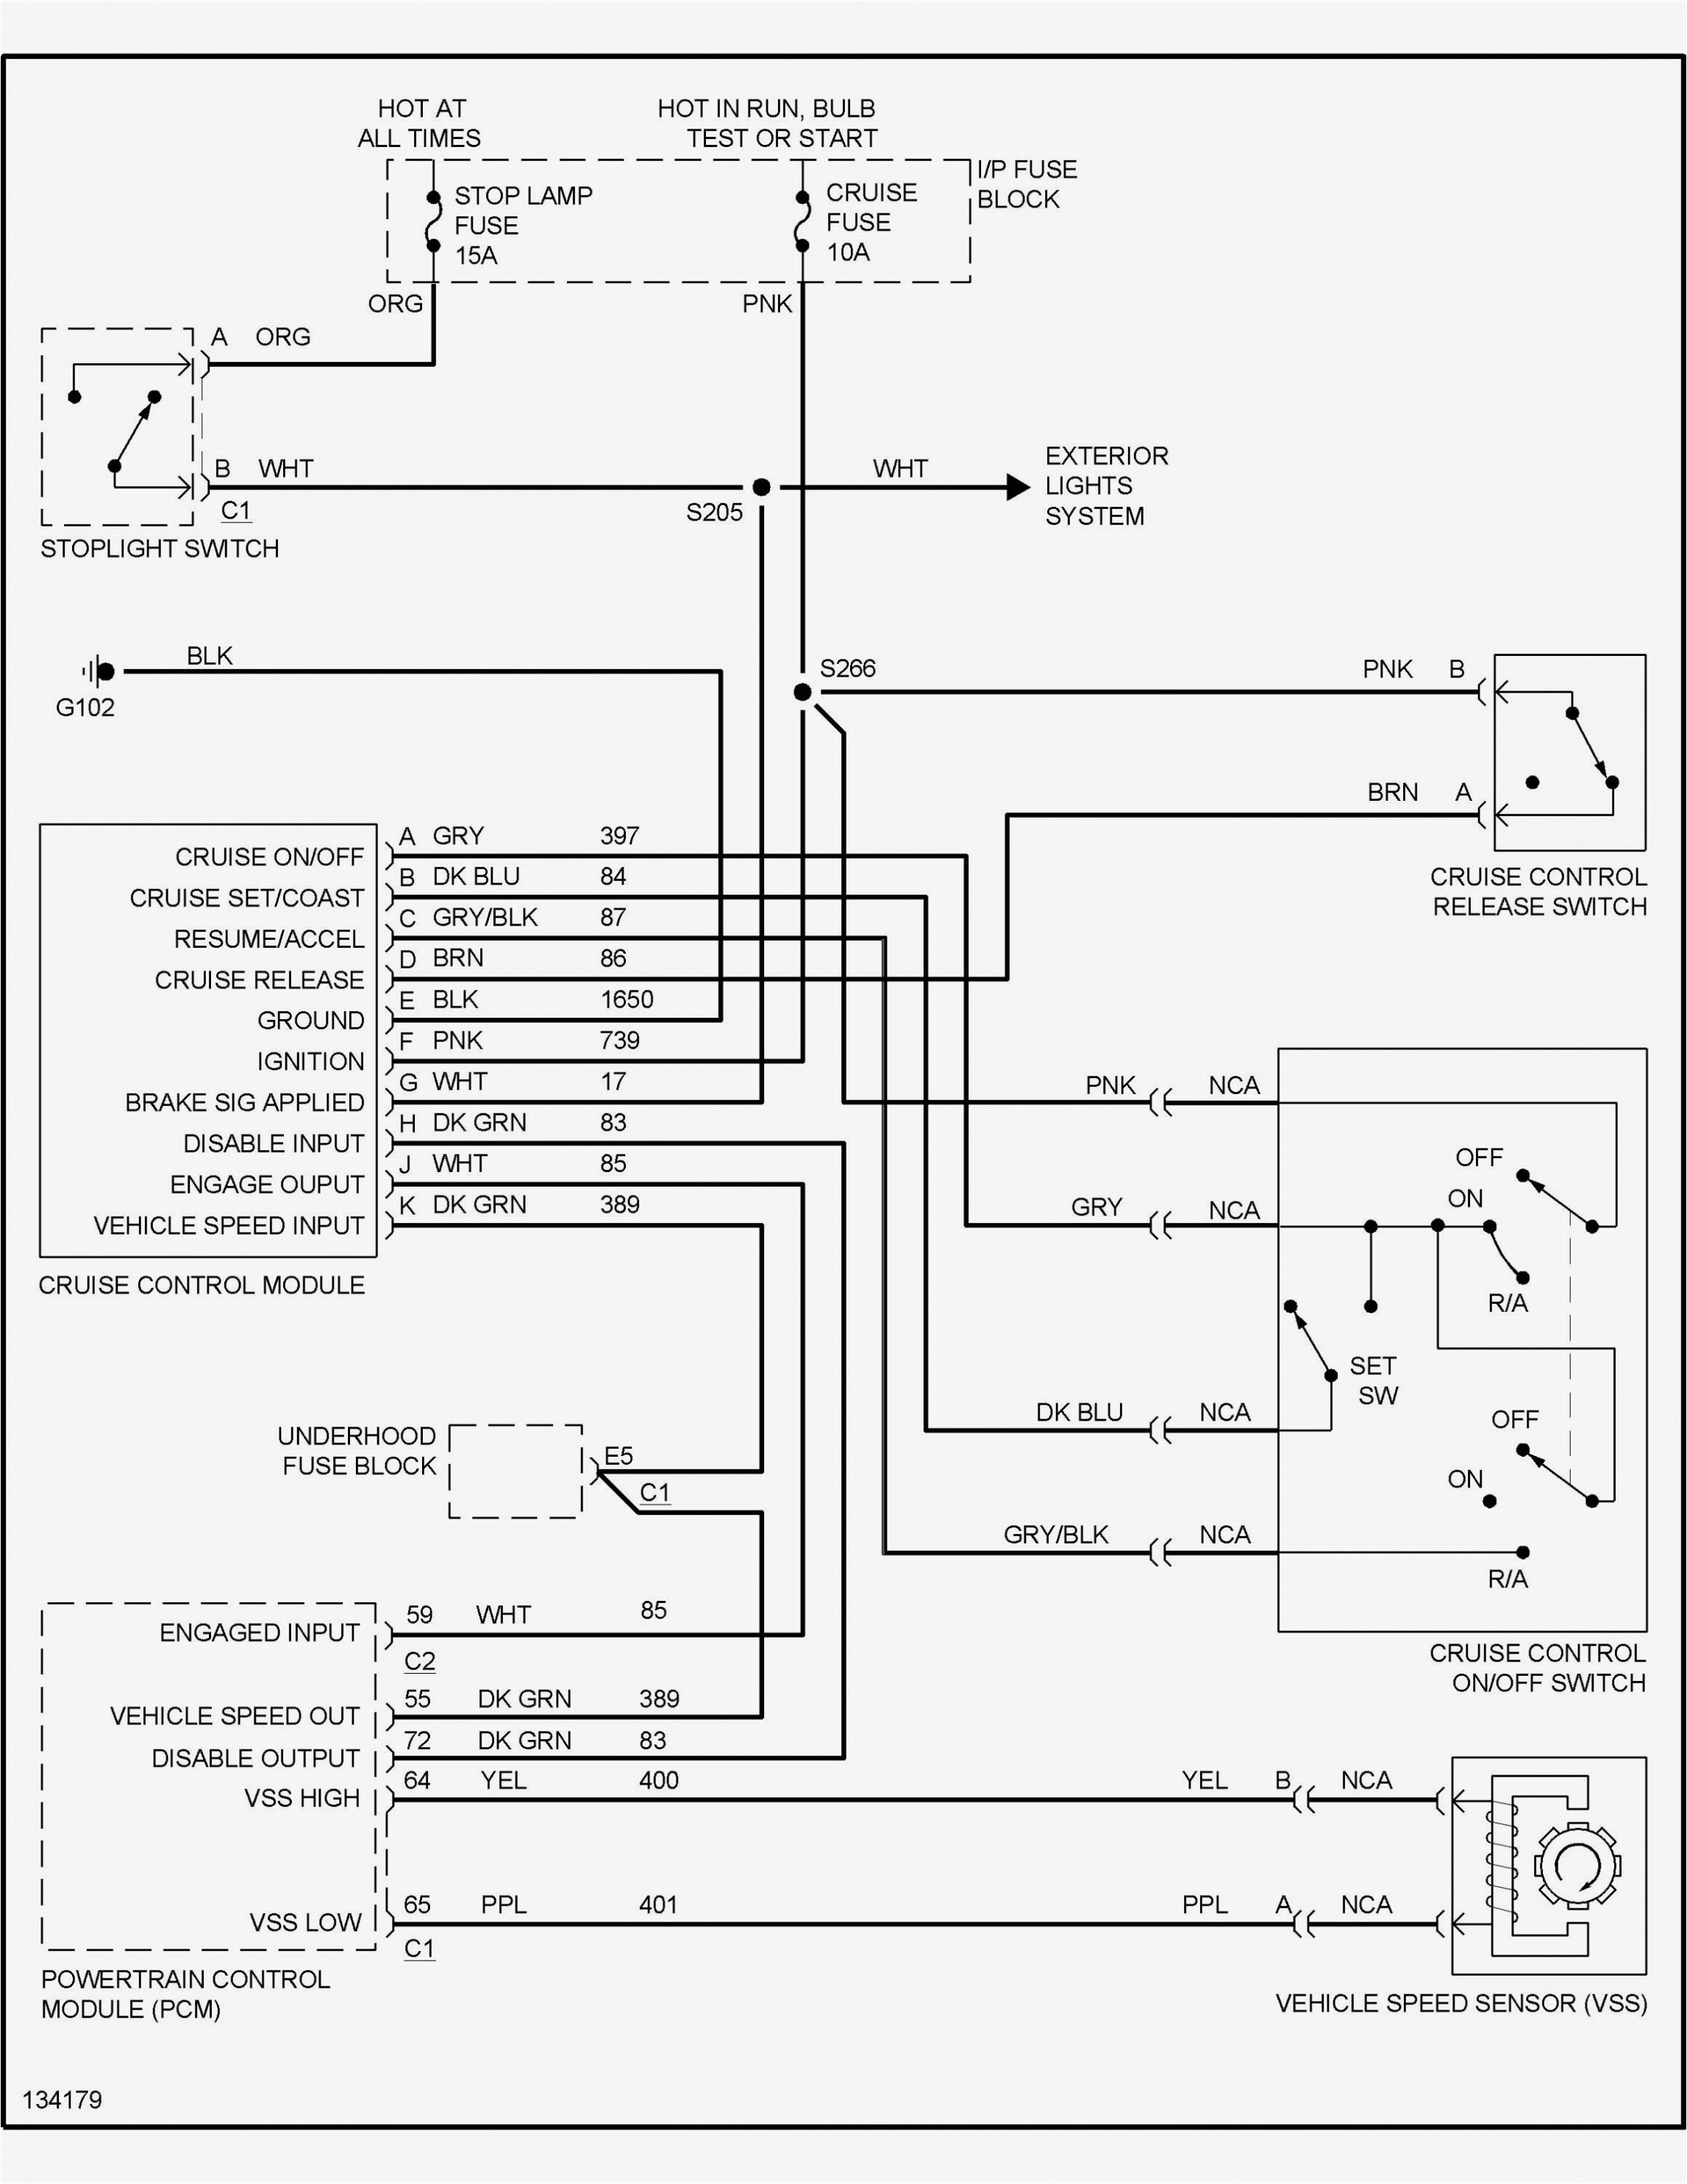 sony xplod wiring harness diagram new sony cdx gt35uw wiring diagramsony xplod wiring harness diagram best